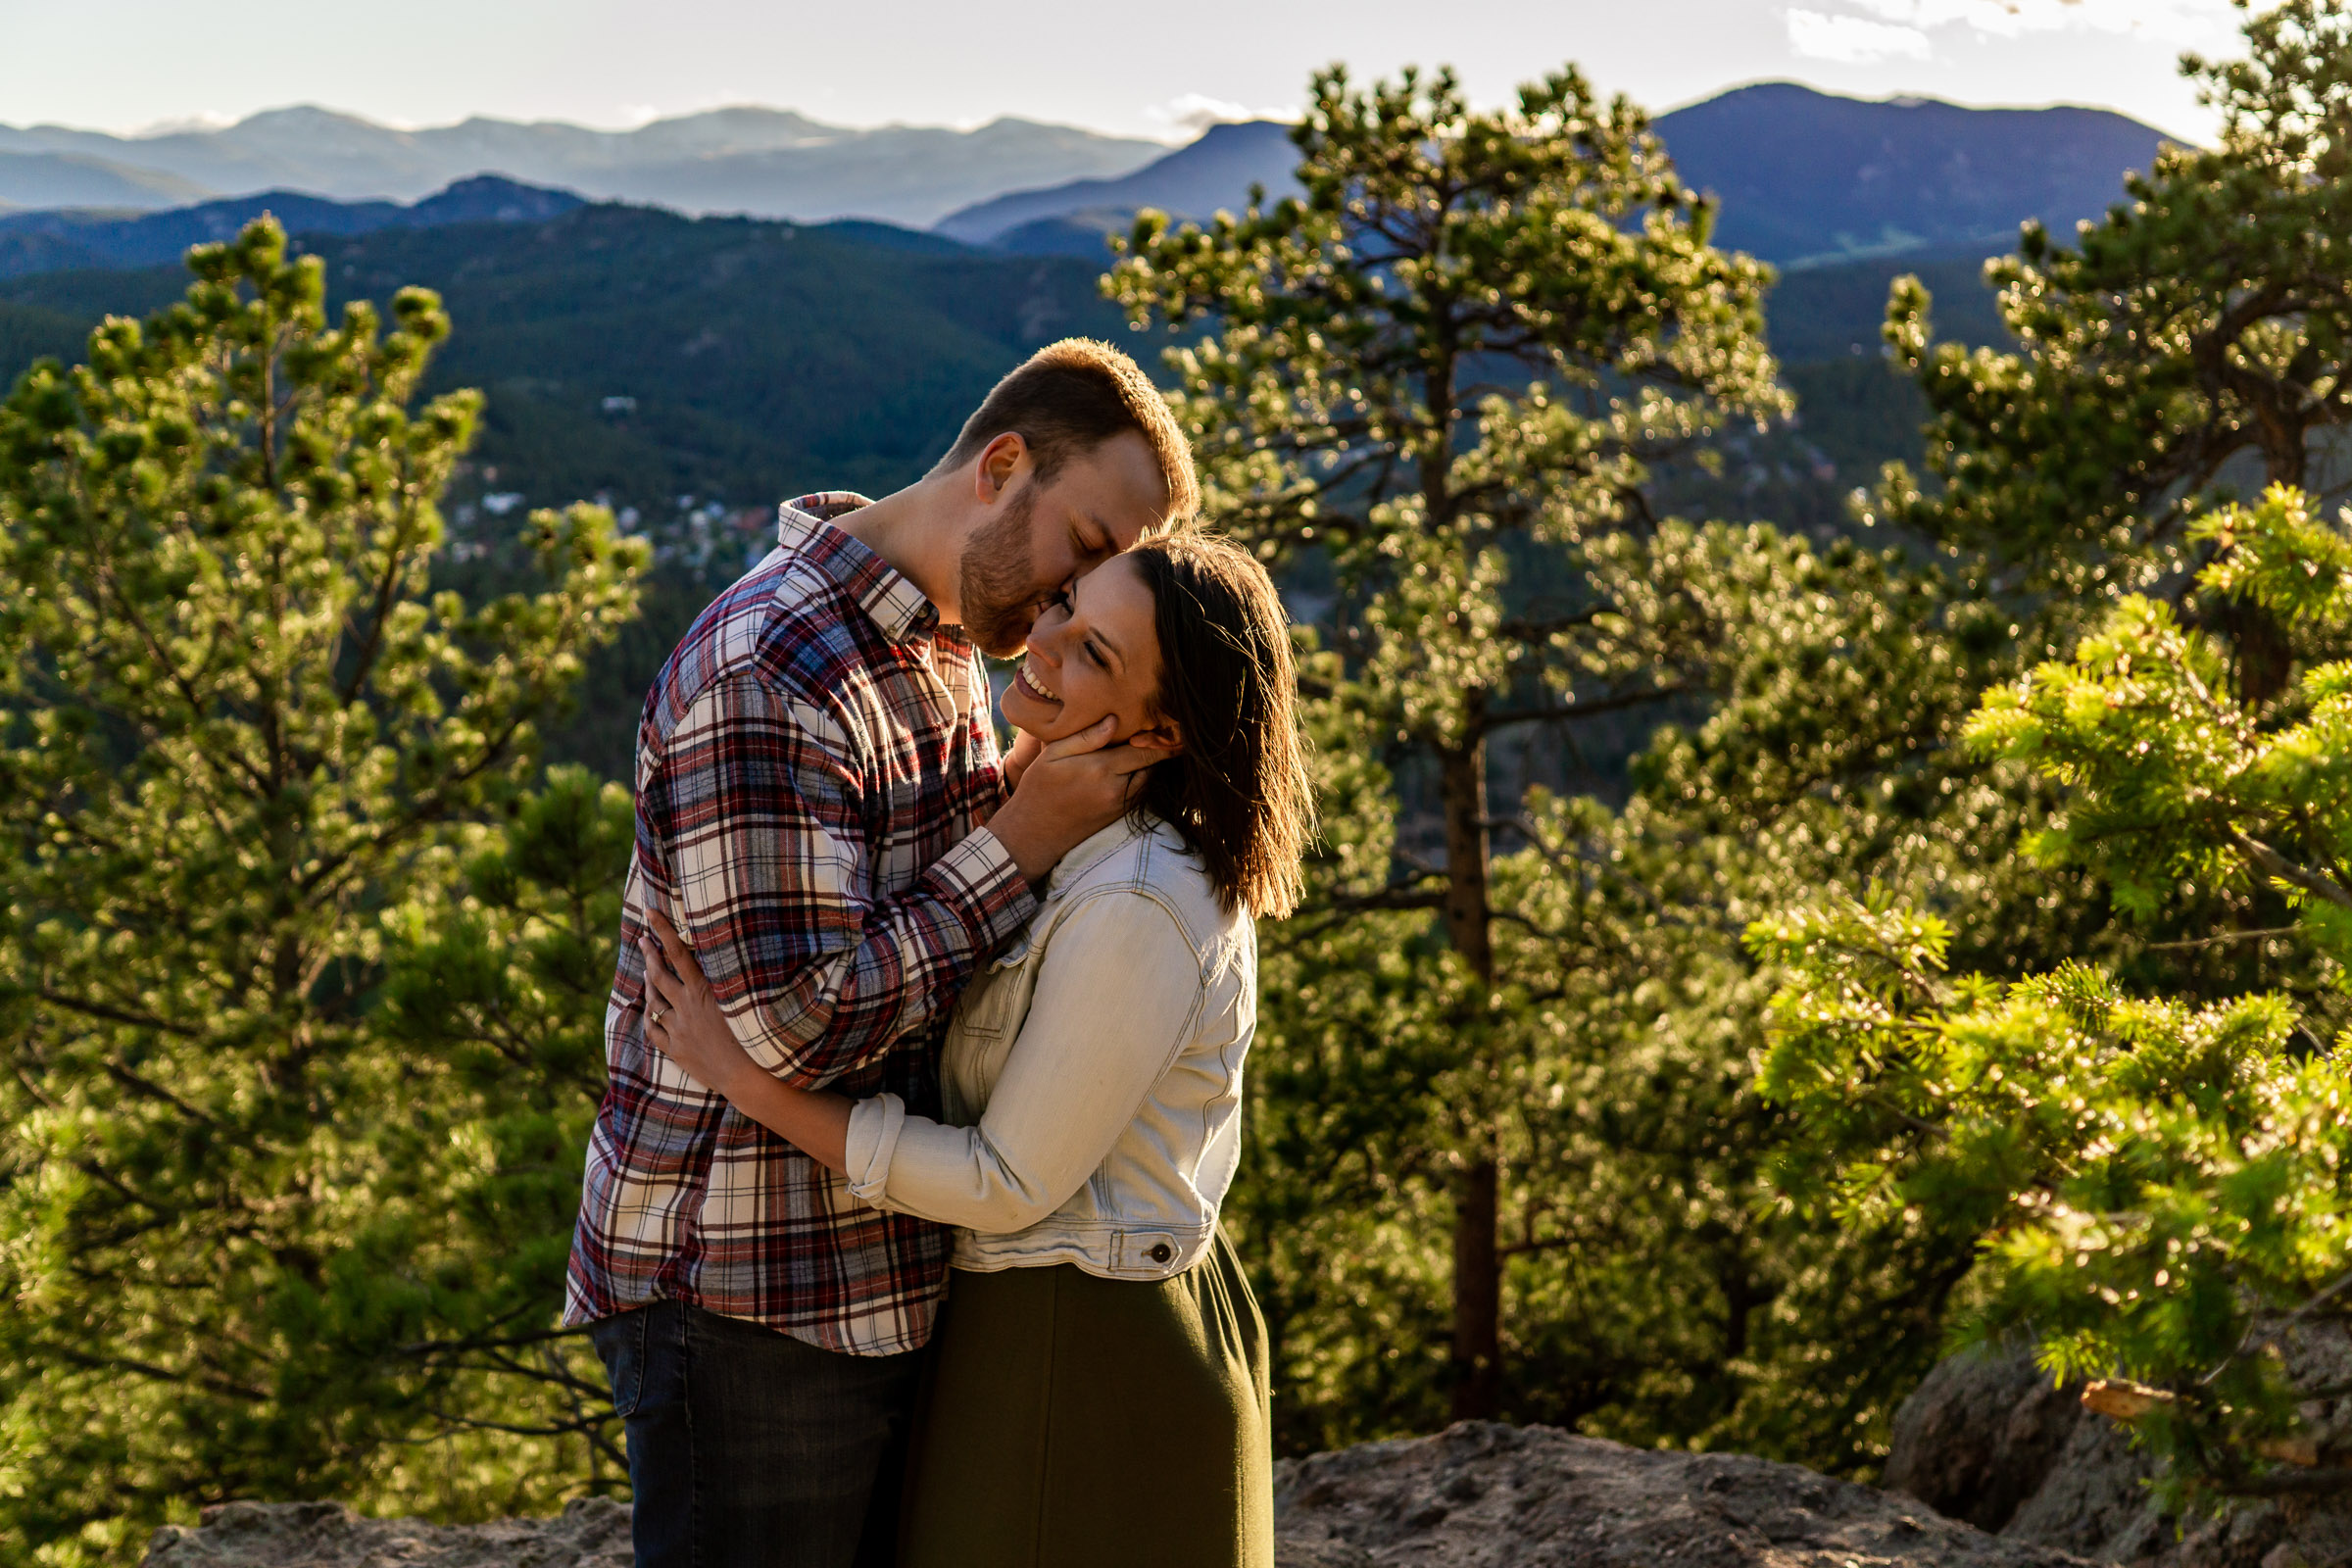 A man whispers something funny in his fiance's ear, making her giggle. Photo by Gabby Jockers Photography. colorado engagement photography, colorado engagement photos, colorado engagement session, evergreen co engagement photos, evergreen co engagement session, colorado photography, evergreen co engagement photos, mountain engagement photos, mountain engagement session, sunset engagement photos, hiking engagement, adventure photos, adventure session, couples photos